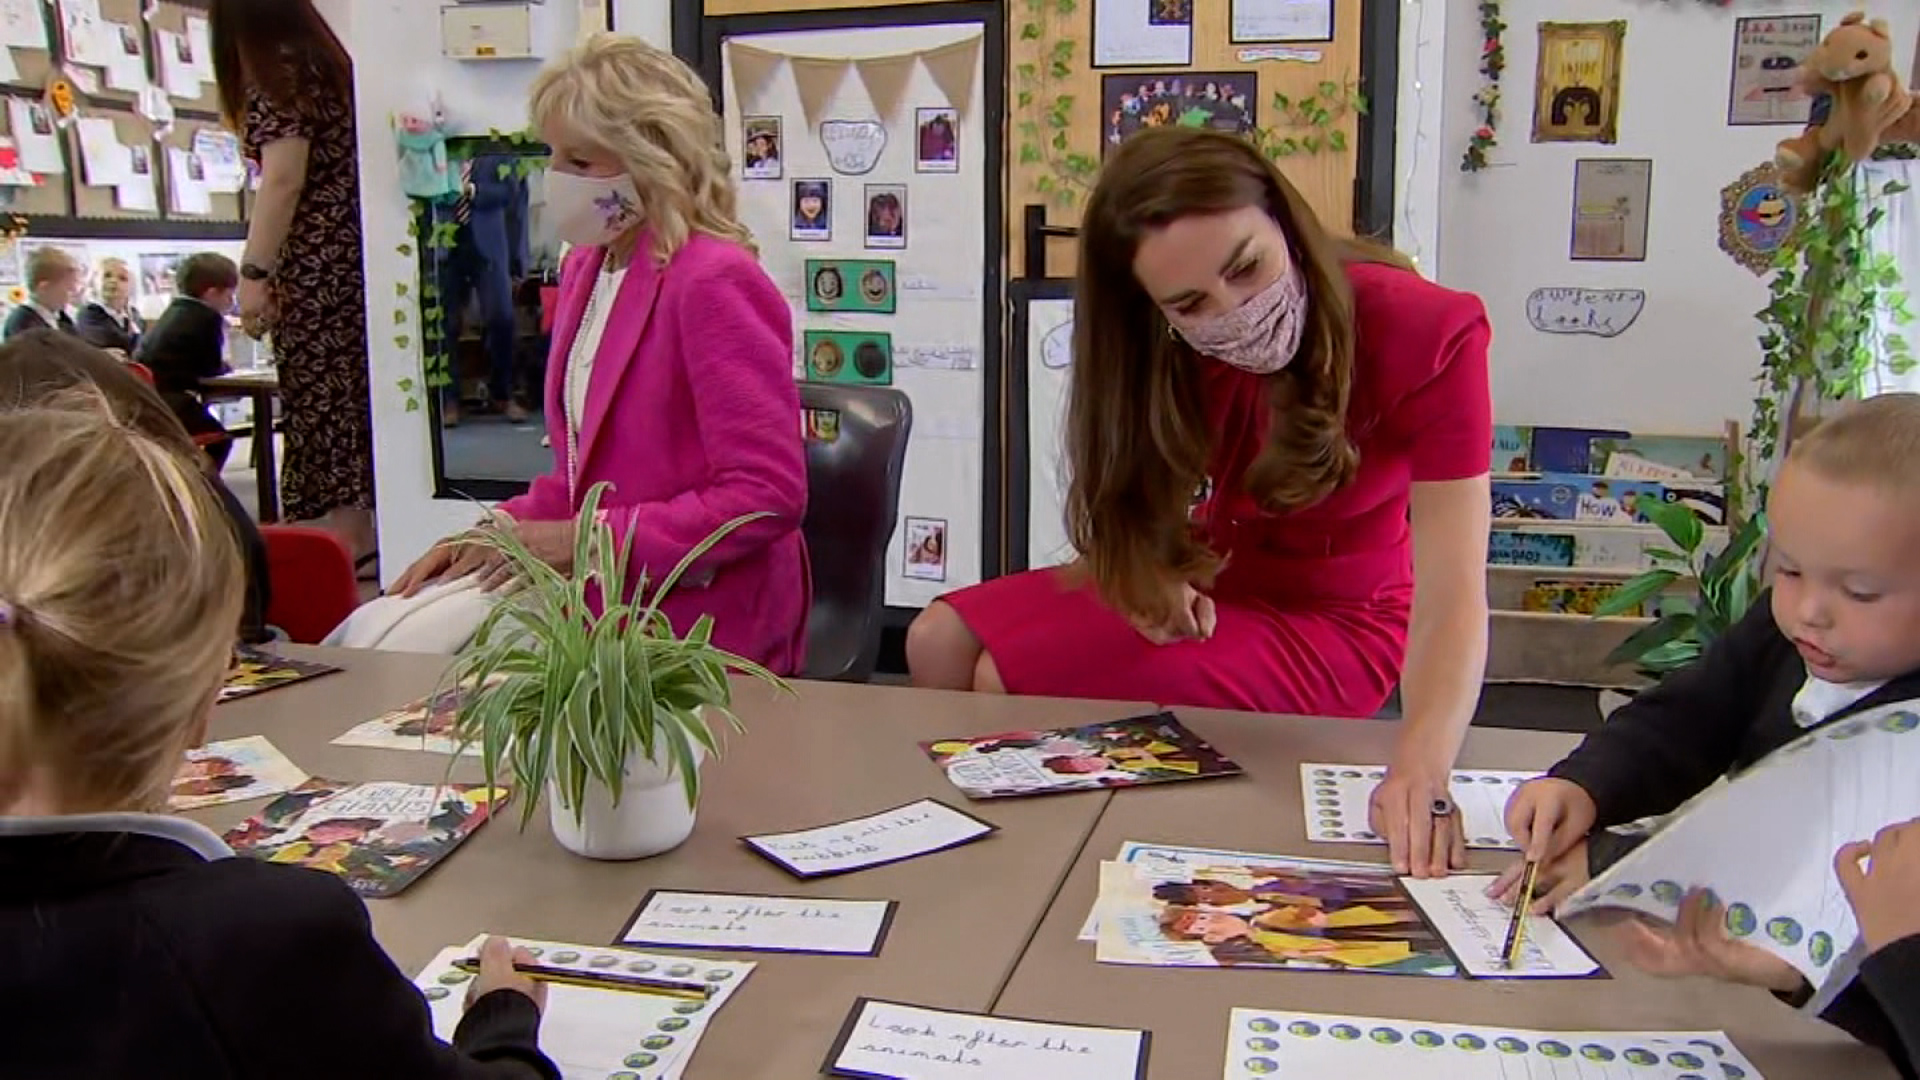 First Lady Jill Biden And The Duchess Of Cambridge Visit Classroom In Cornwall